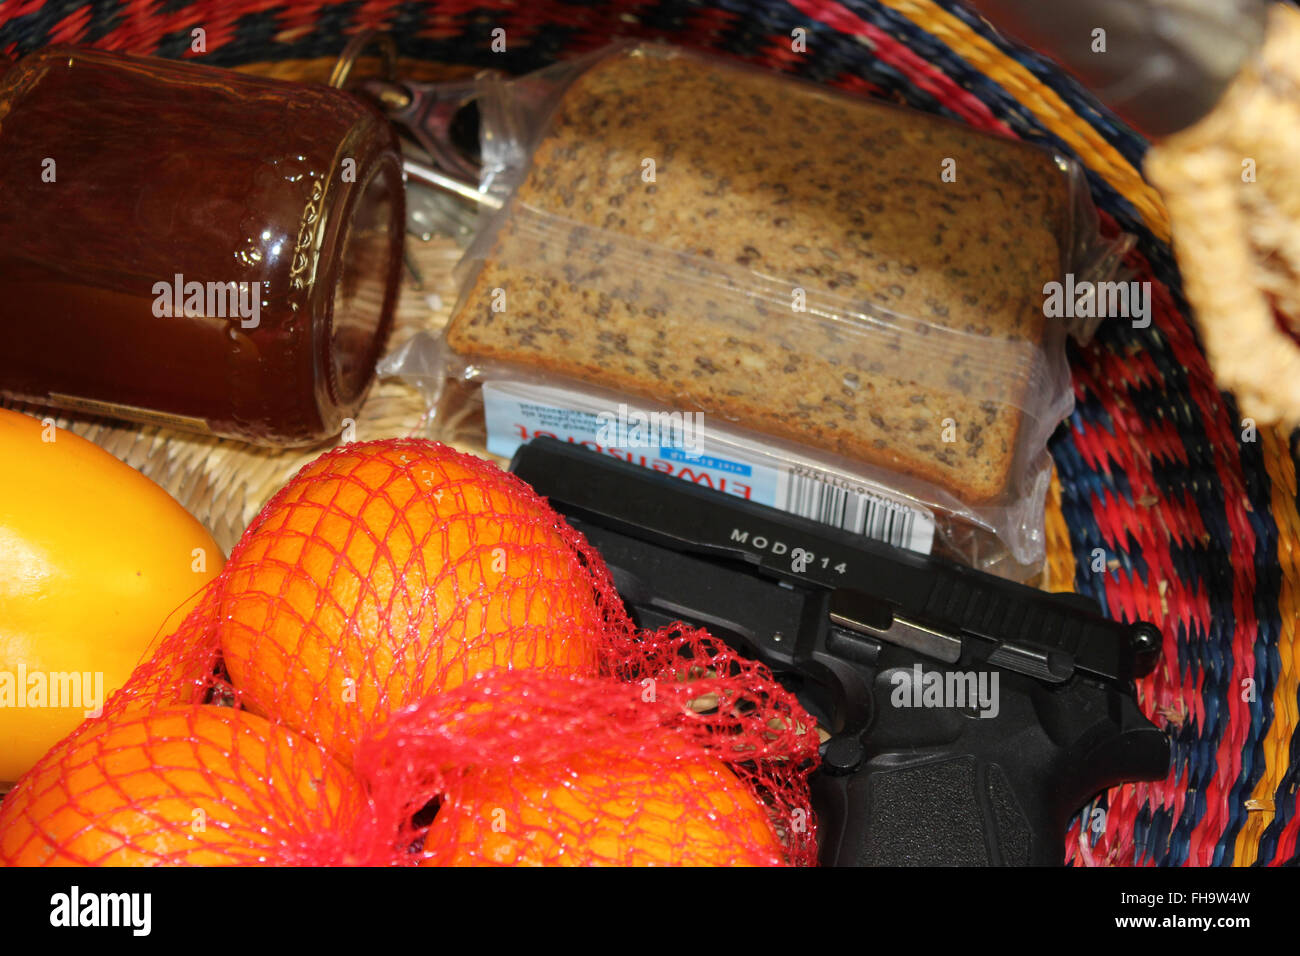 Carried concealed. Handgun and accessories in a shopping basket. - Stock Image